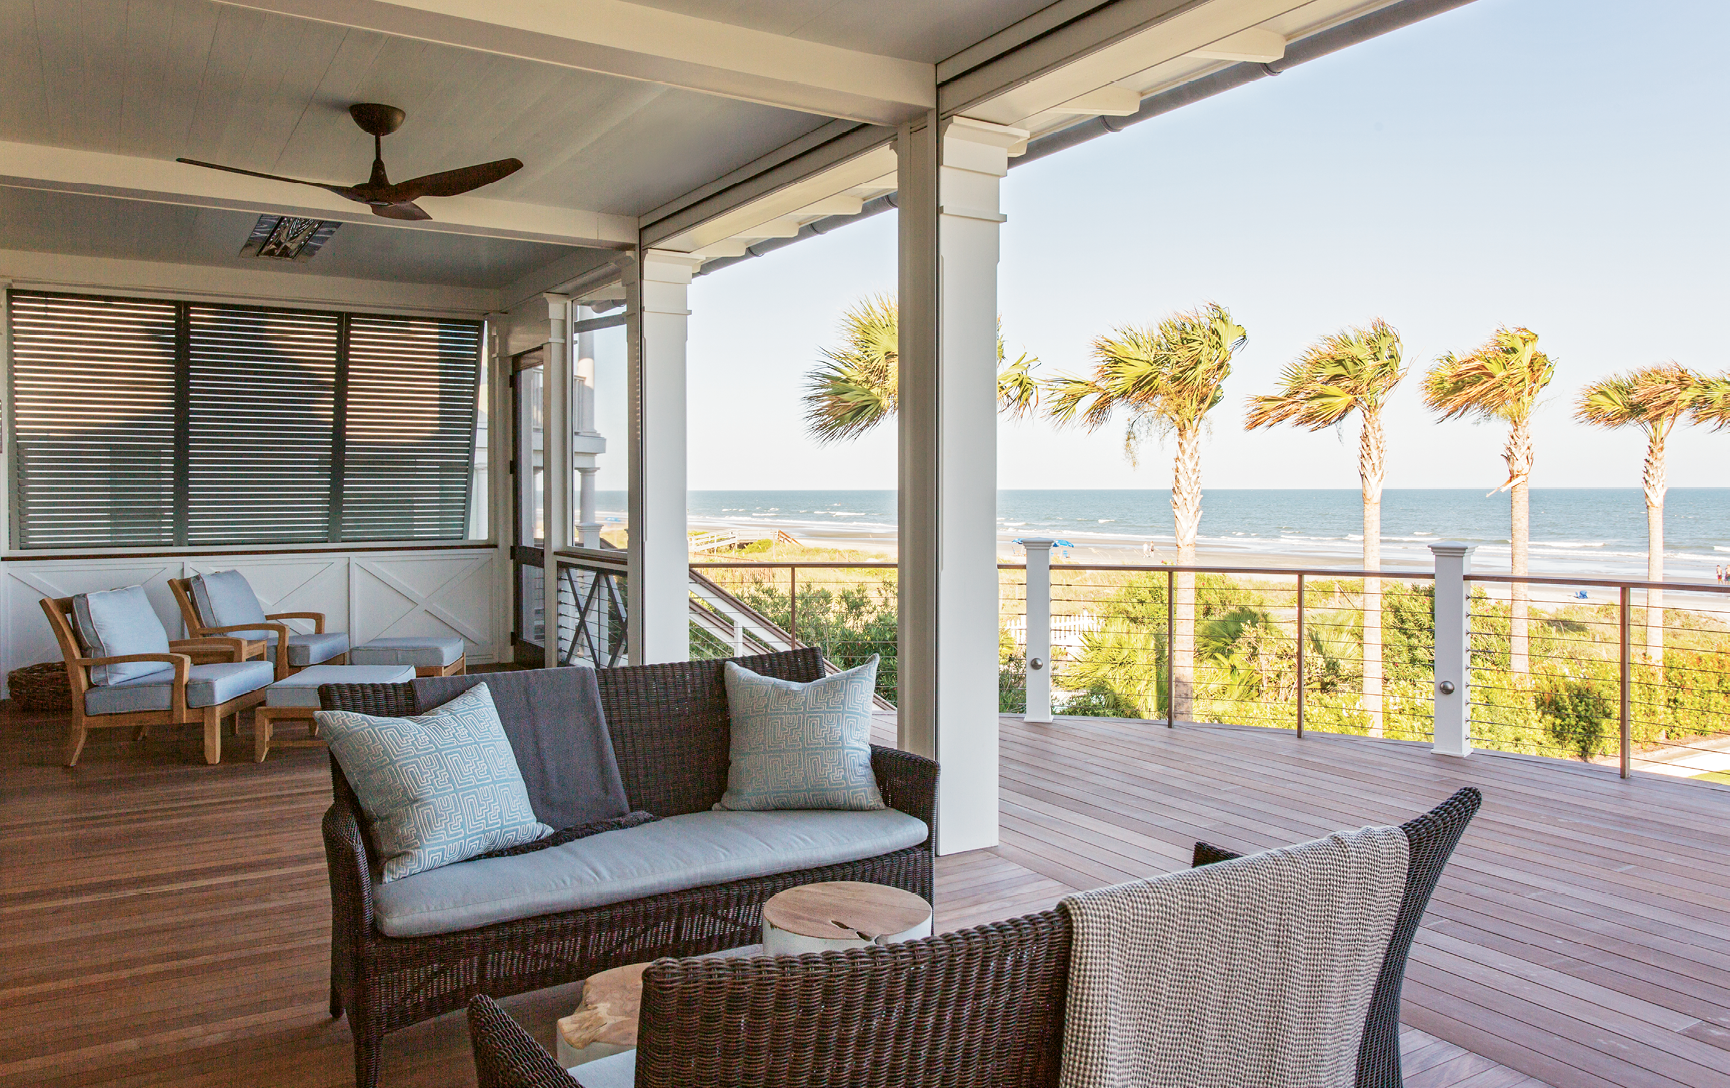 Kingsley Bate furnishings make this second-floor oceanfront patio feel like an extension of the family room.